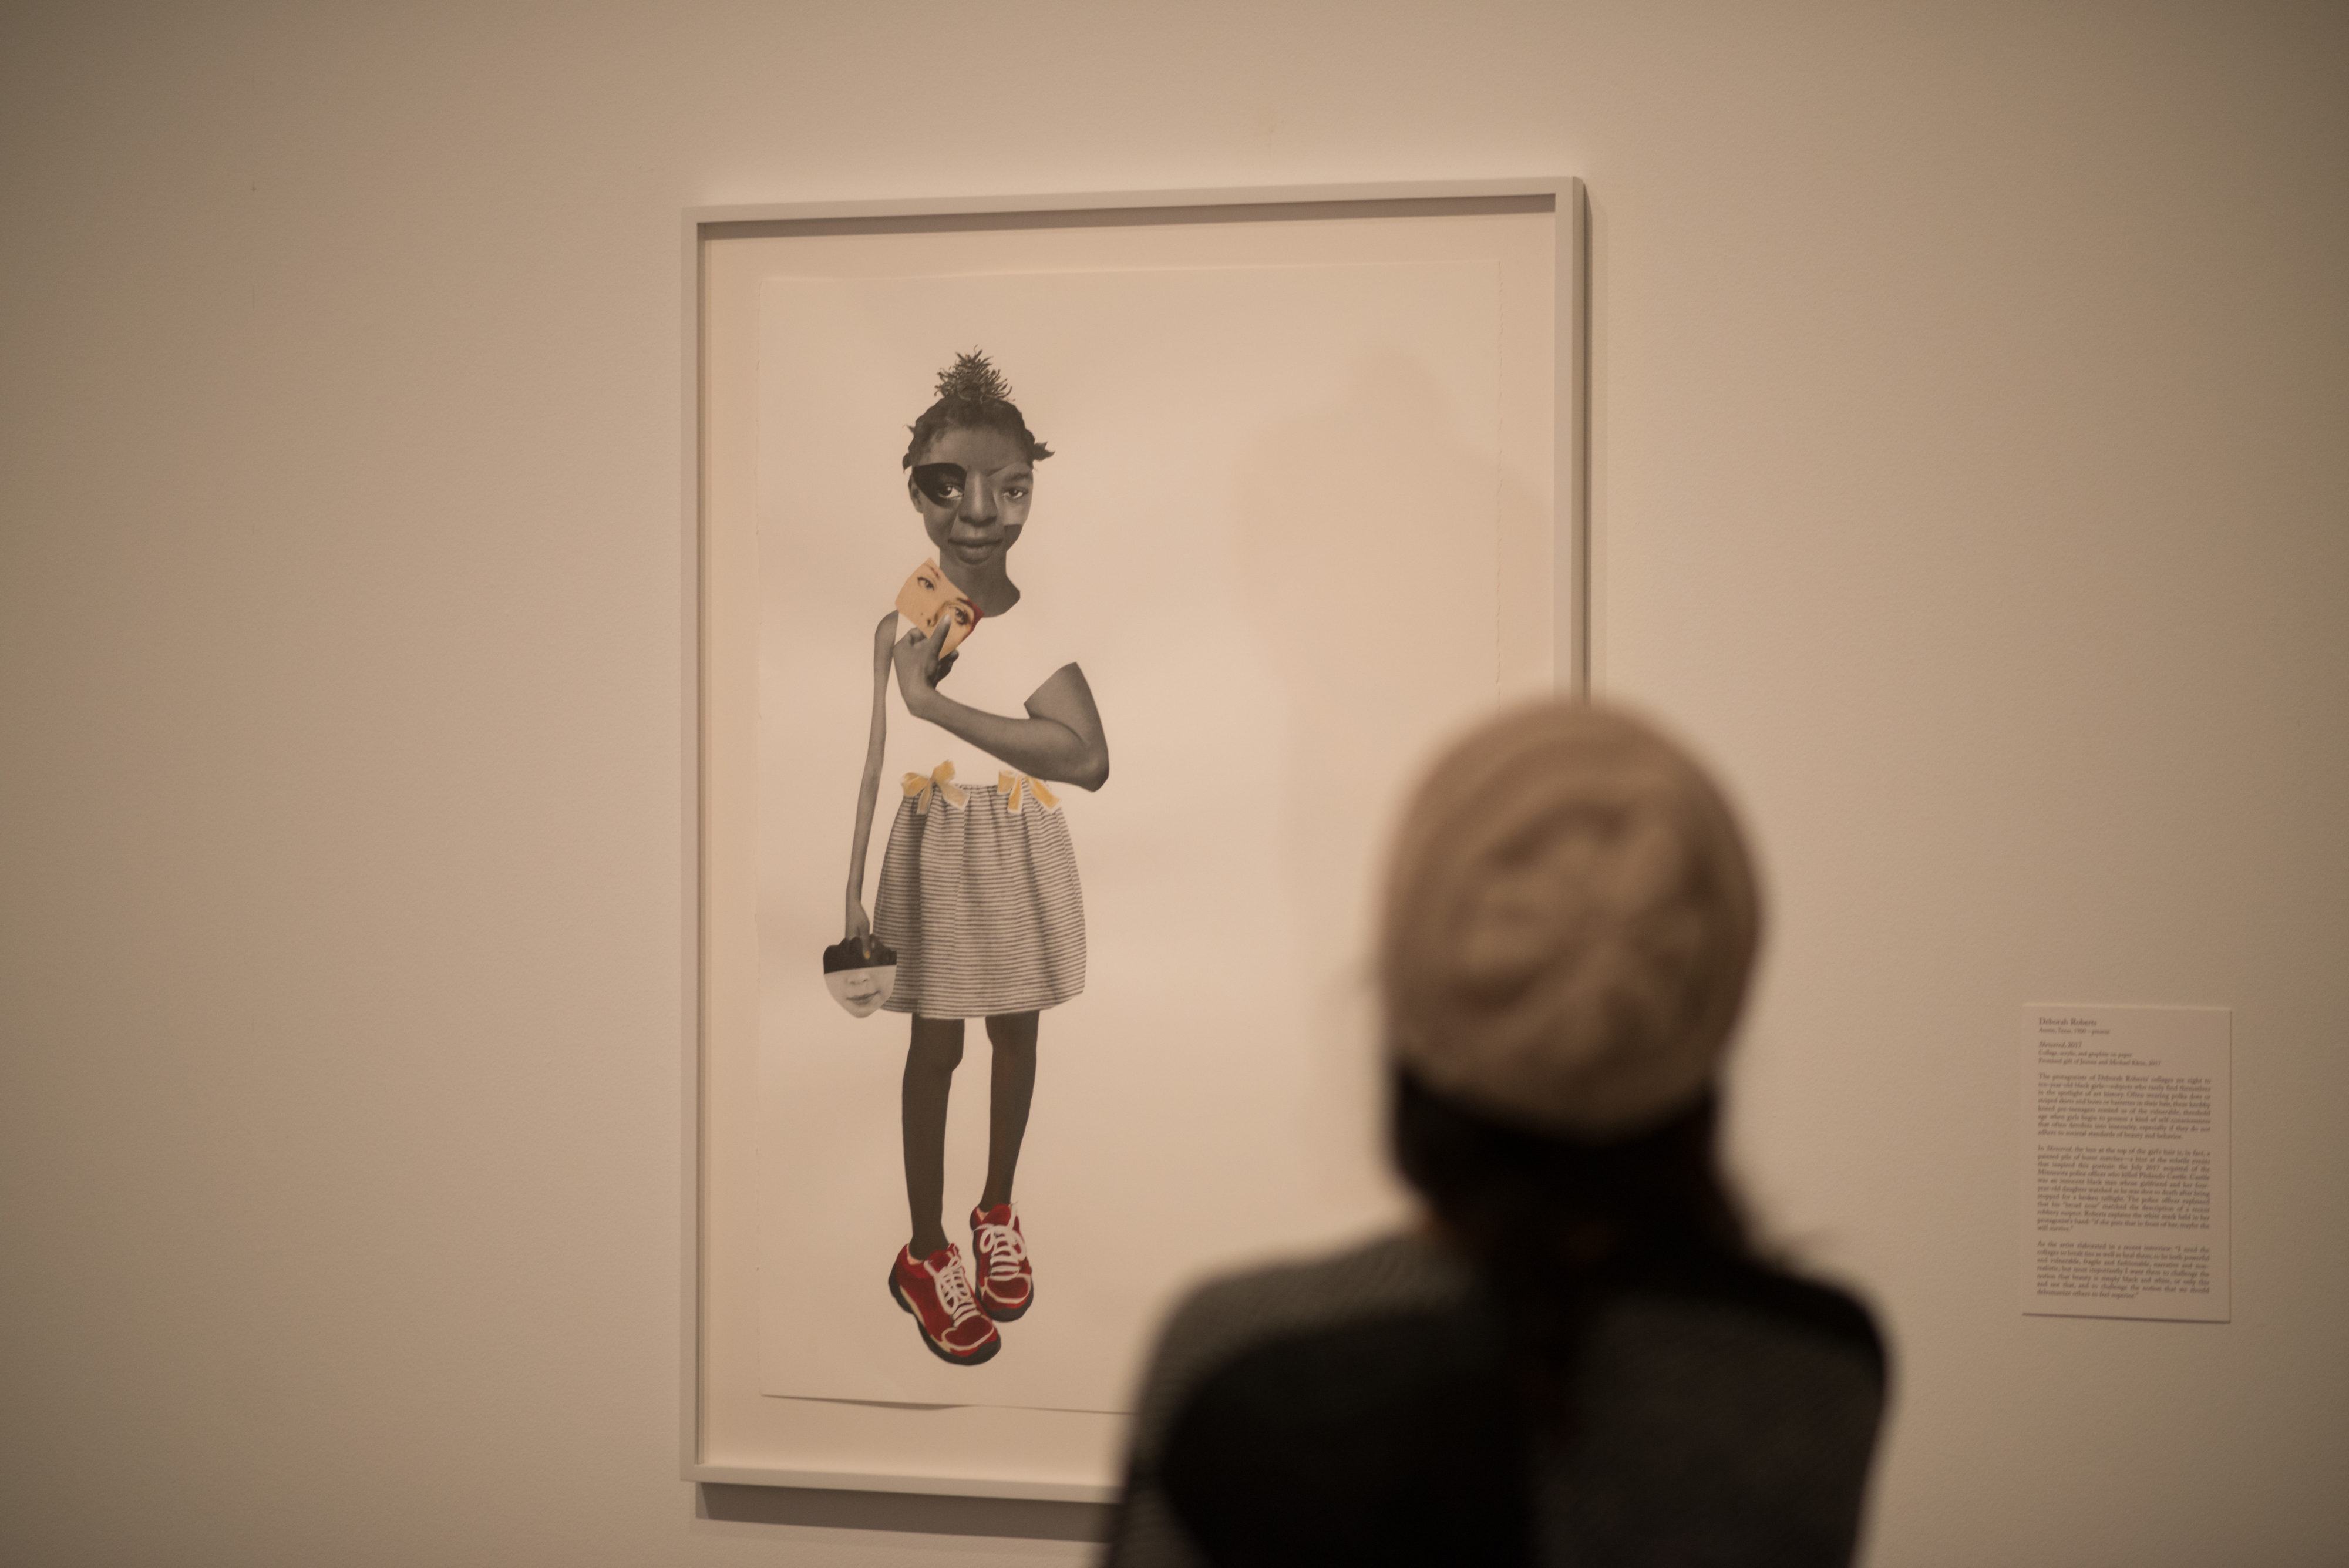 Collage, acrylic, and graphite artwork by artist Deborah Roberts, titled Skewered, depicting a young girl